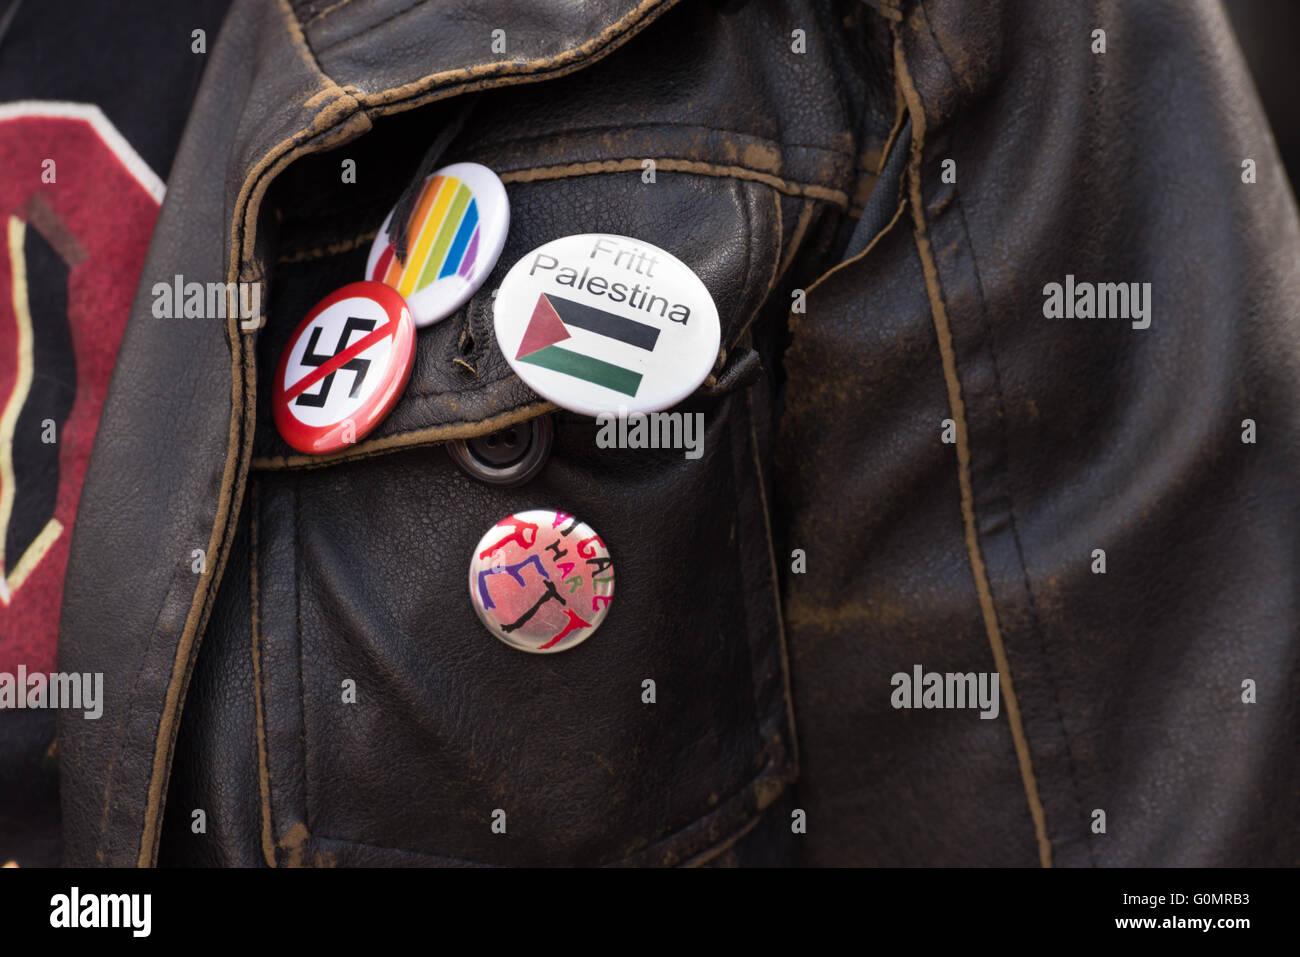 An activist wears a pin saying 'Free Palestine' in Norwegian among anti-fascist and LGBTQ symbols during - Stock Image